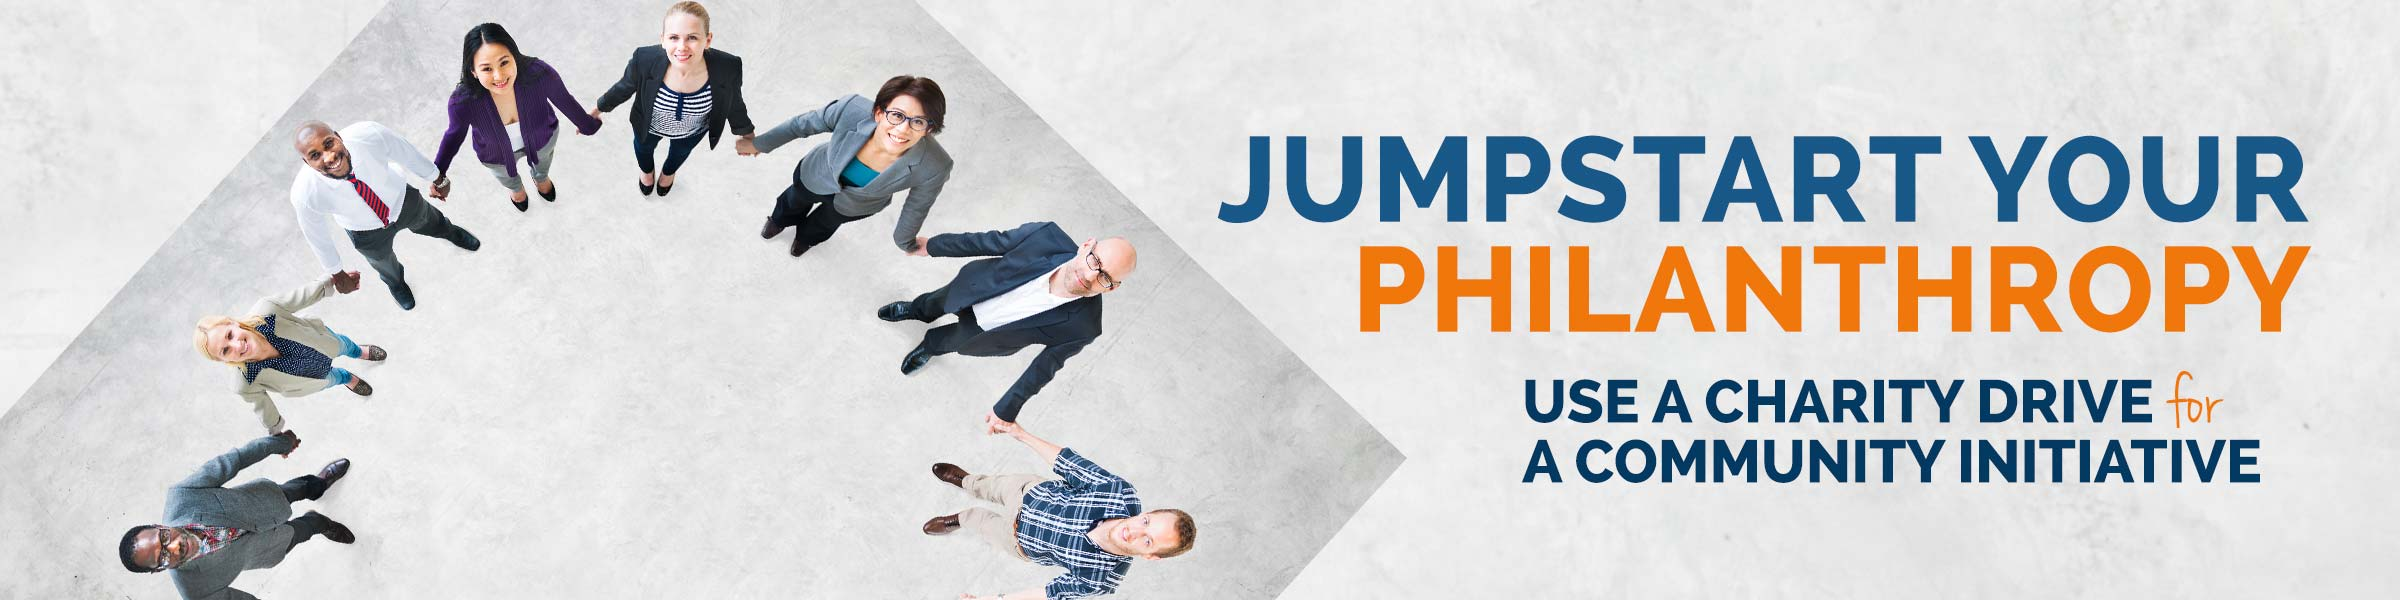 Jumpstart Philanthropy